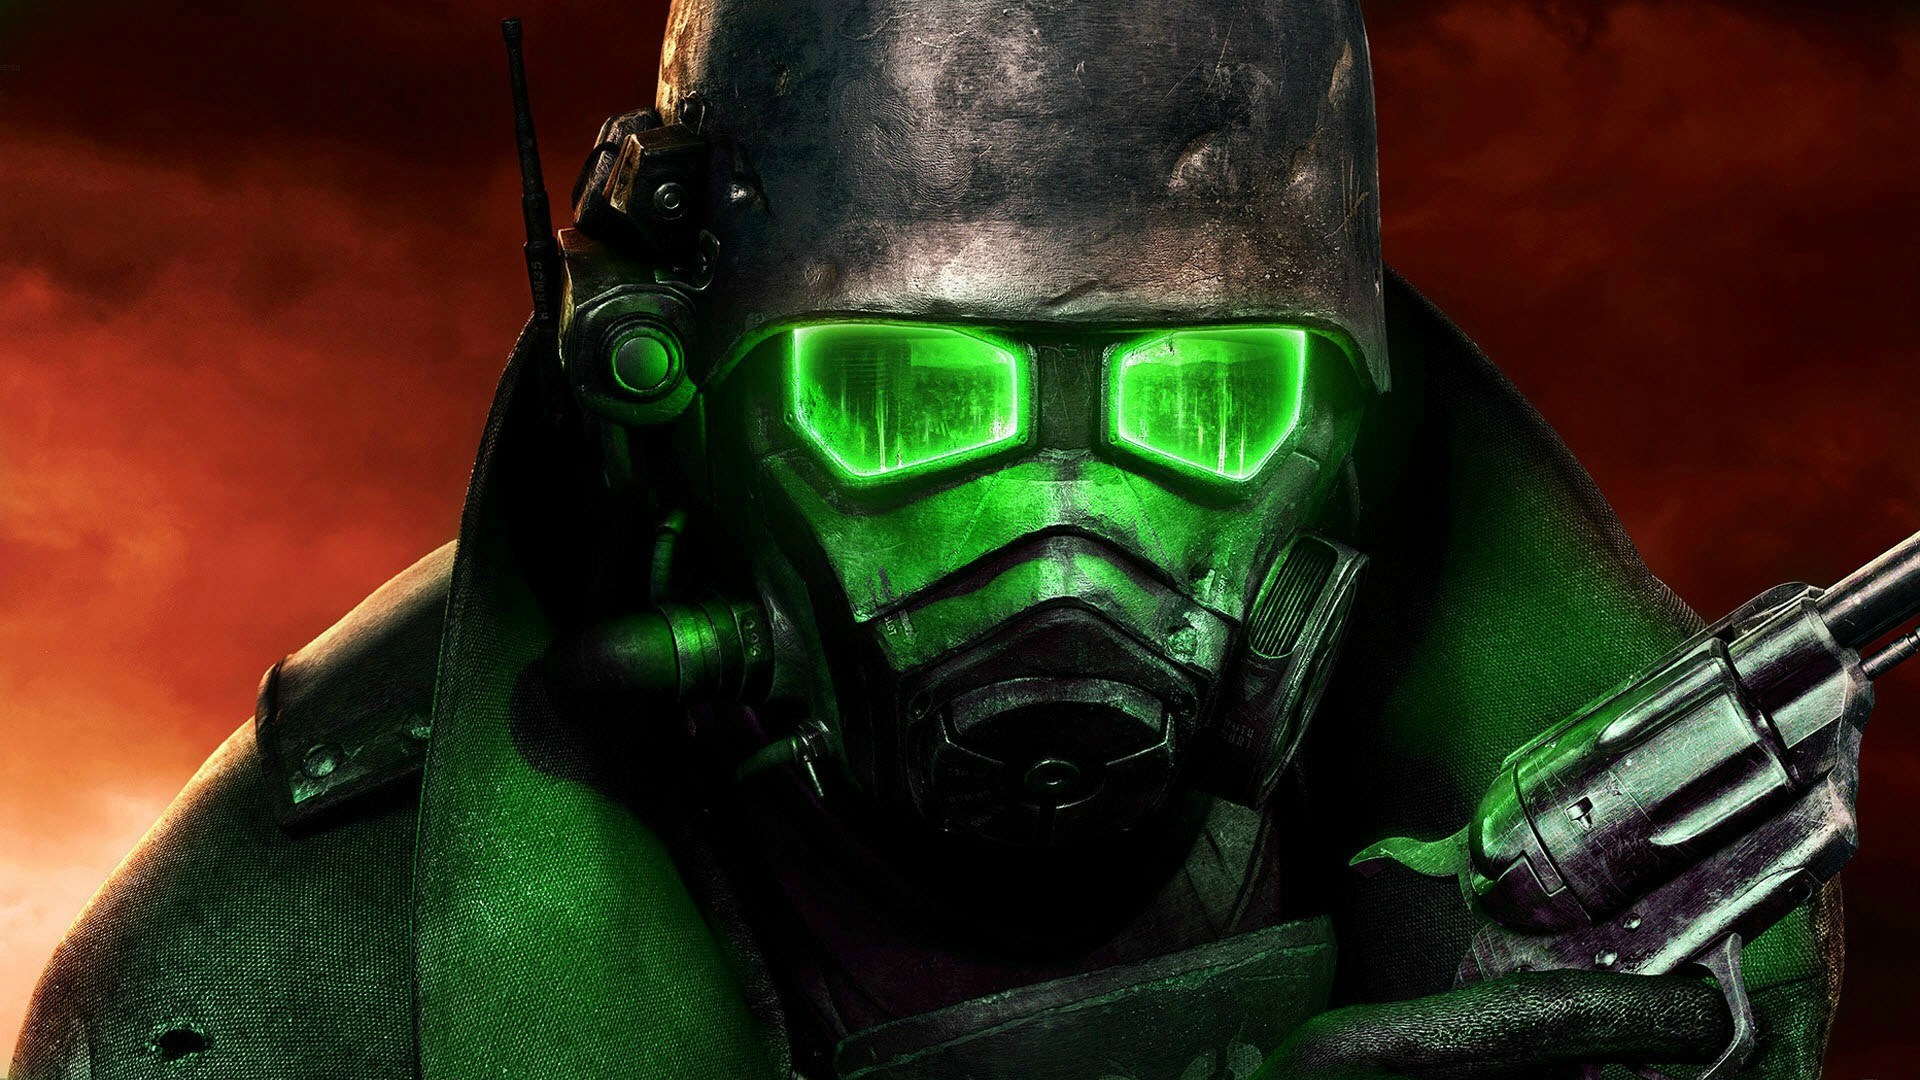 1920x1080-px-images-fallout-new-vegas-by-Hawke-Jacobson-for-pocketfullofgrace-com-wallpaper-wp340900